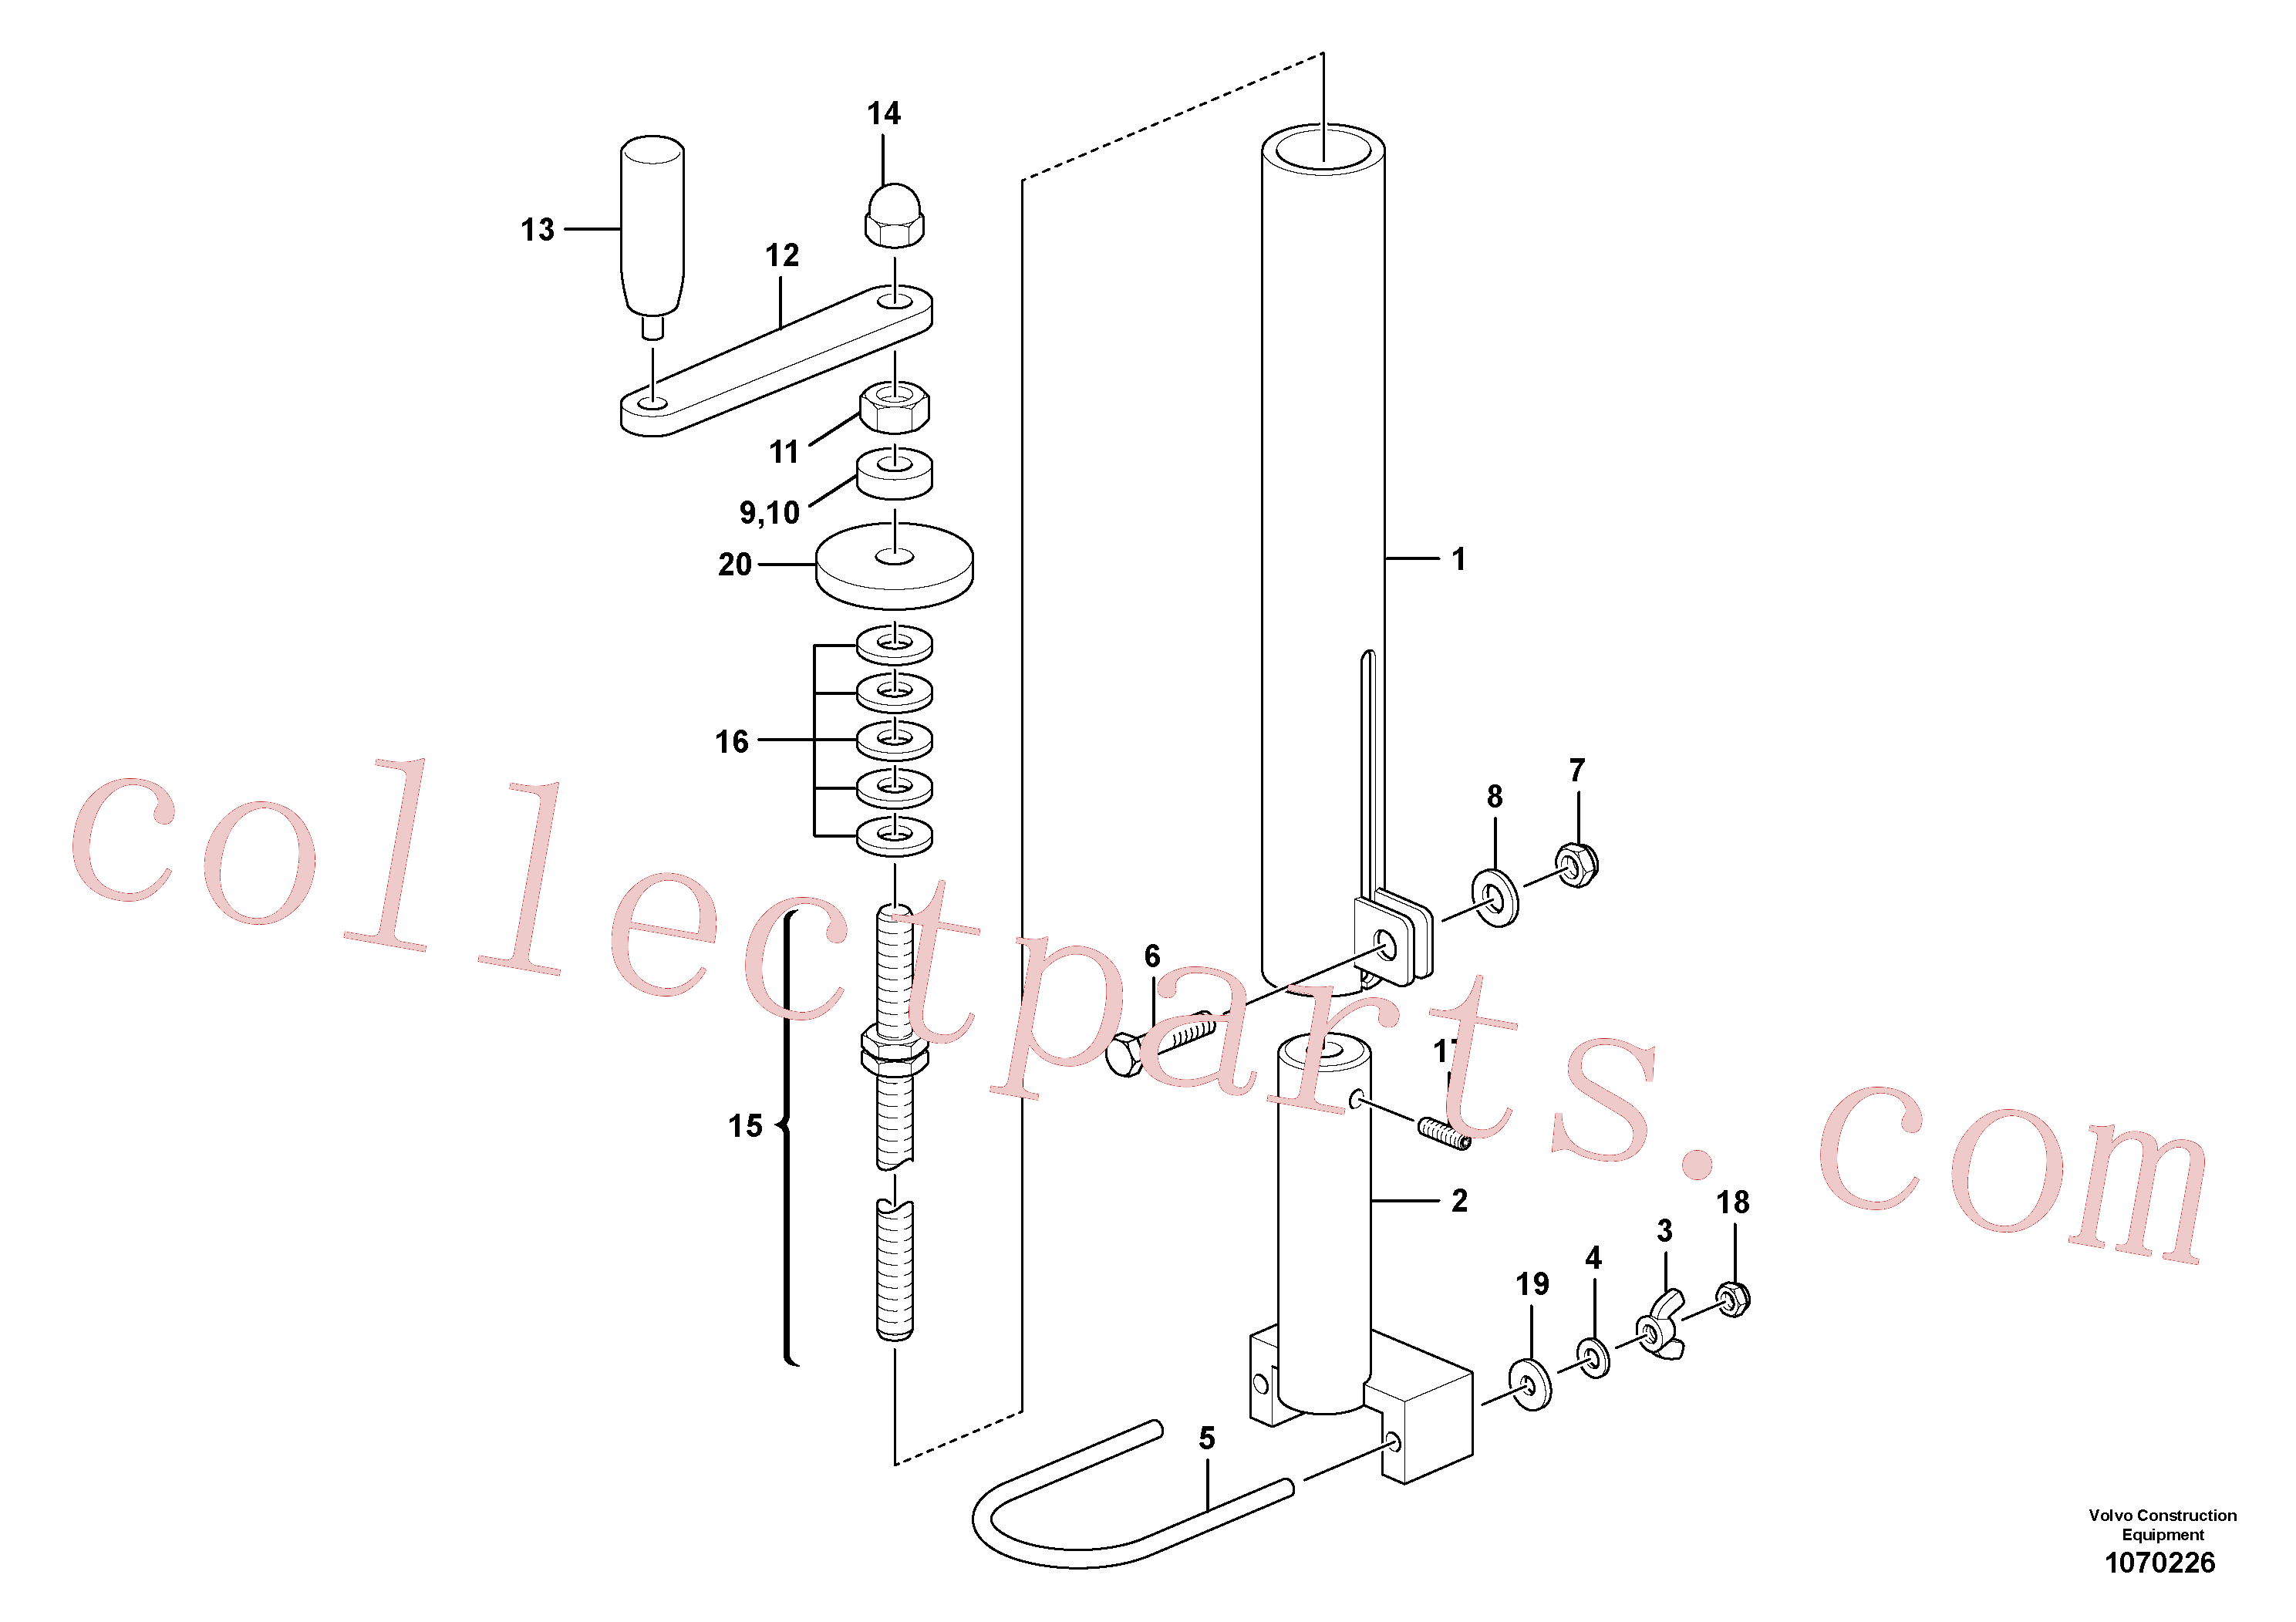 RM14083810 for Volvo Mechanical Control Assembly(1070226 assembly)